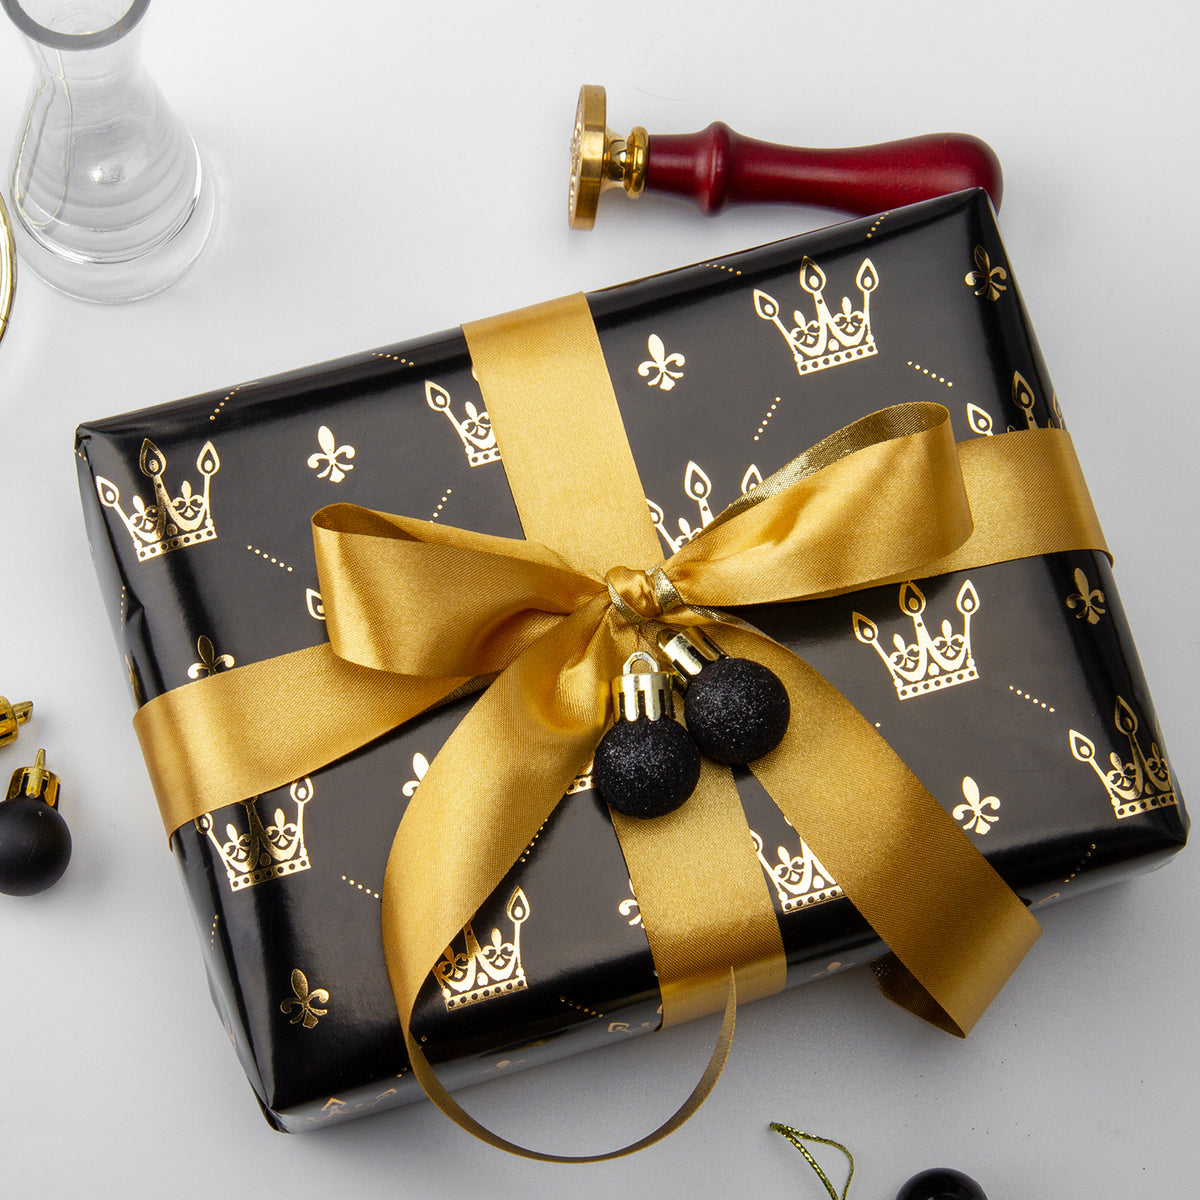 Wrapaholic-Gold-Foil-Crown-Design- with-Cut-Lines- Gift-Wrapping-Paper-Roll-5